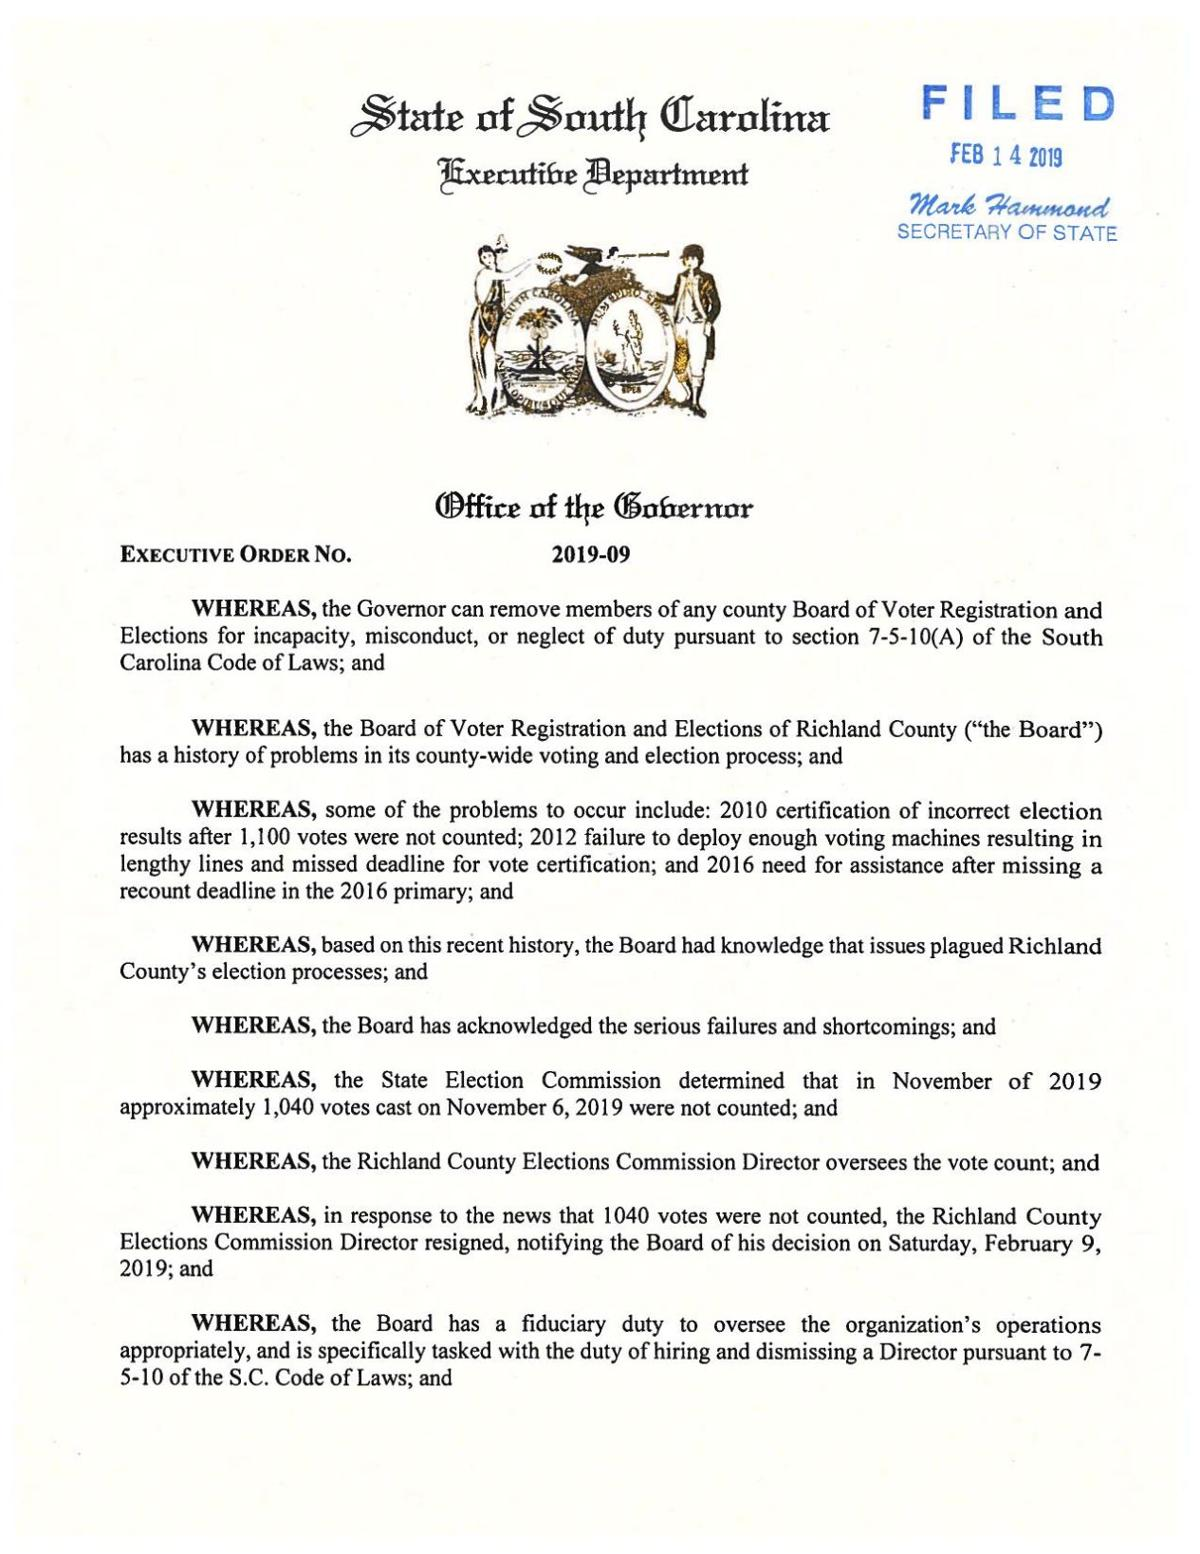 Gov. McMaster's order firing Richland County's elections board